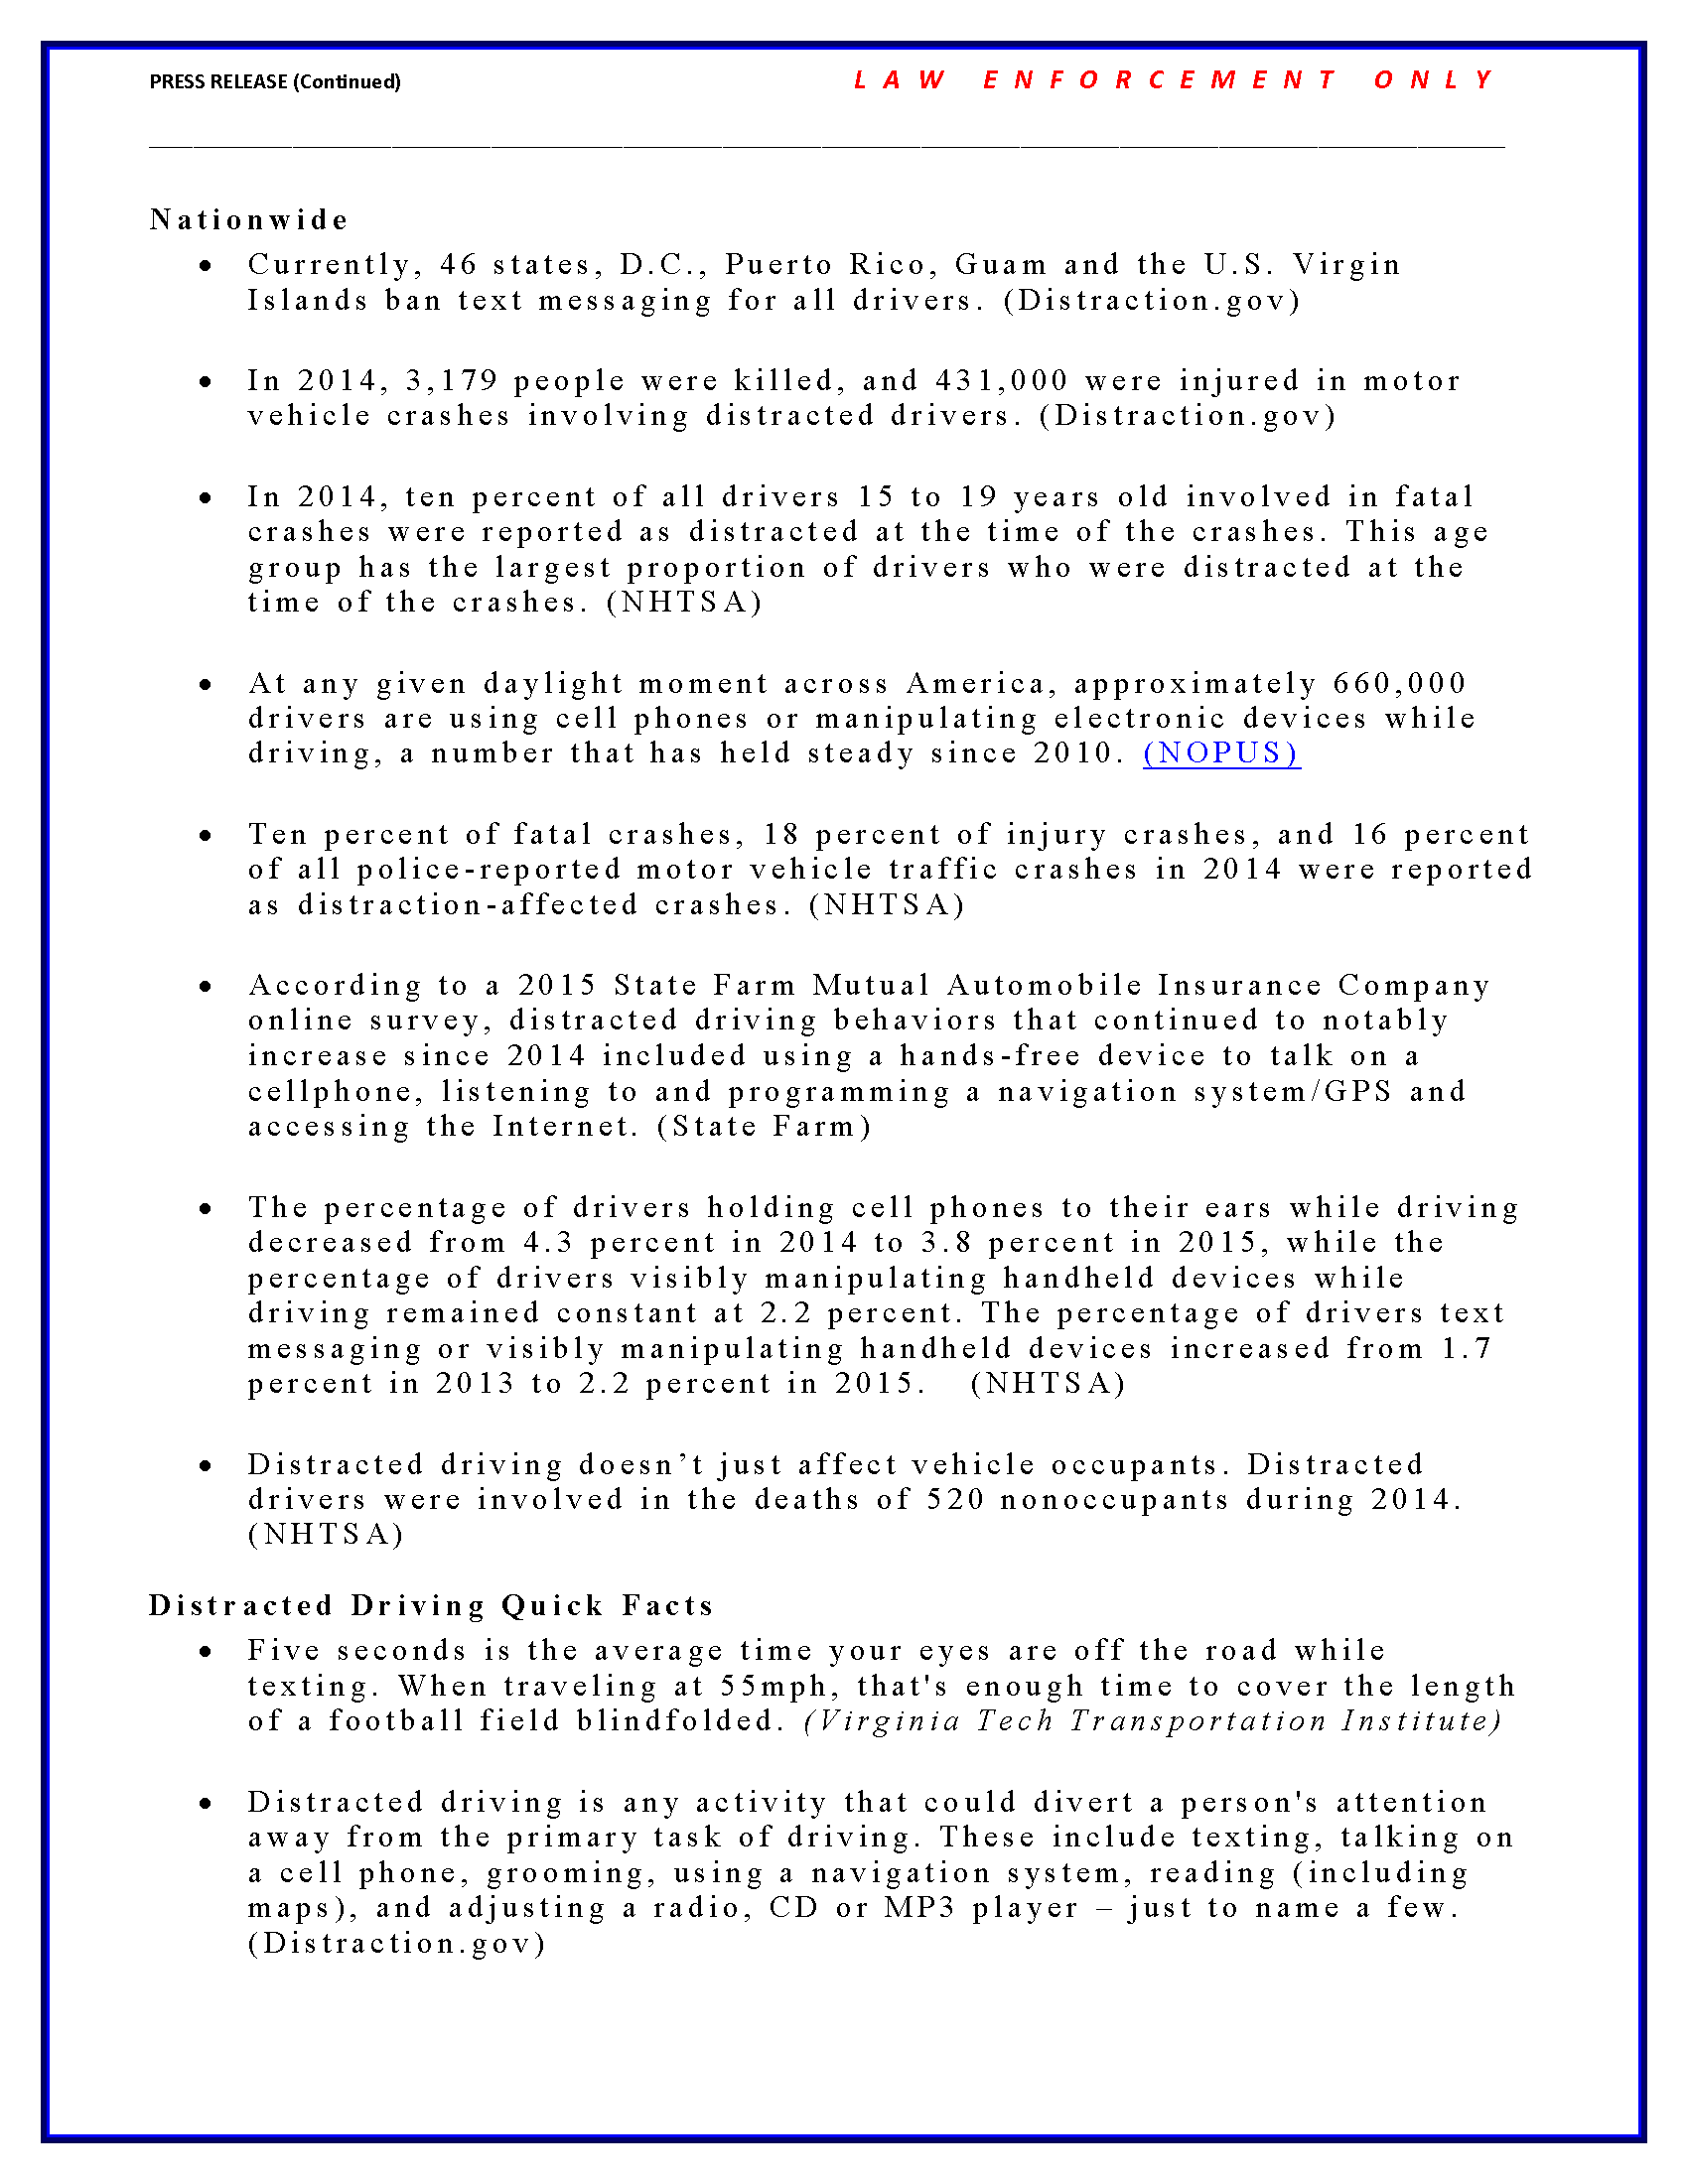 Distracted Driver Stats and Facts Press Release_Page_2.png